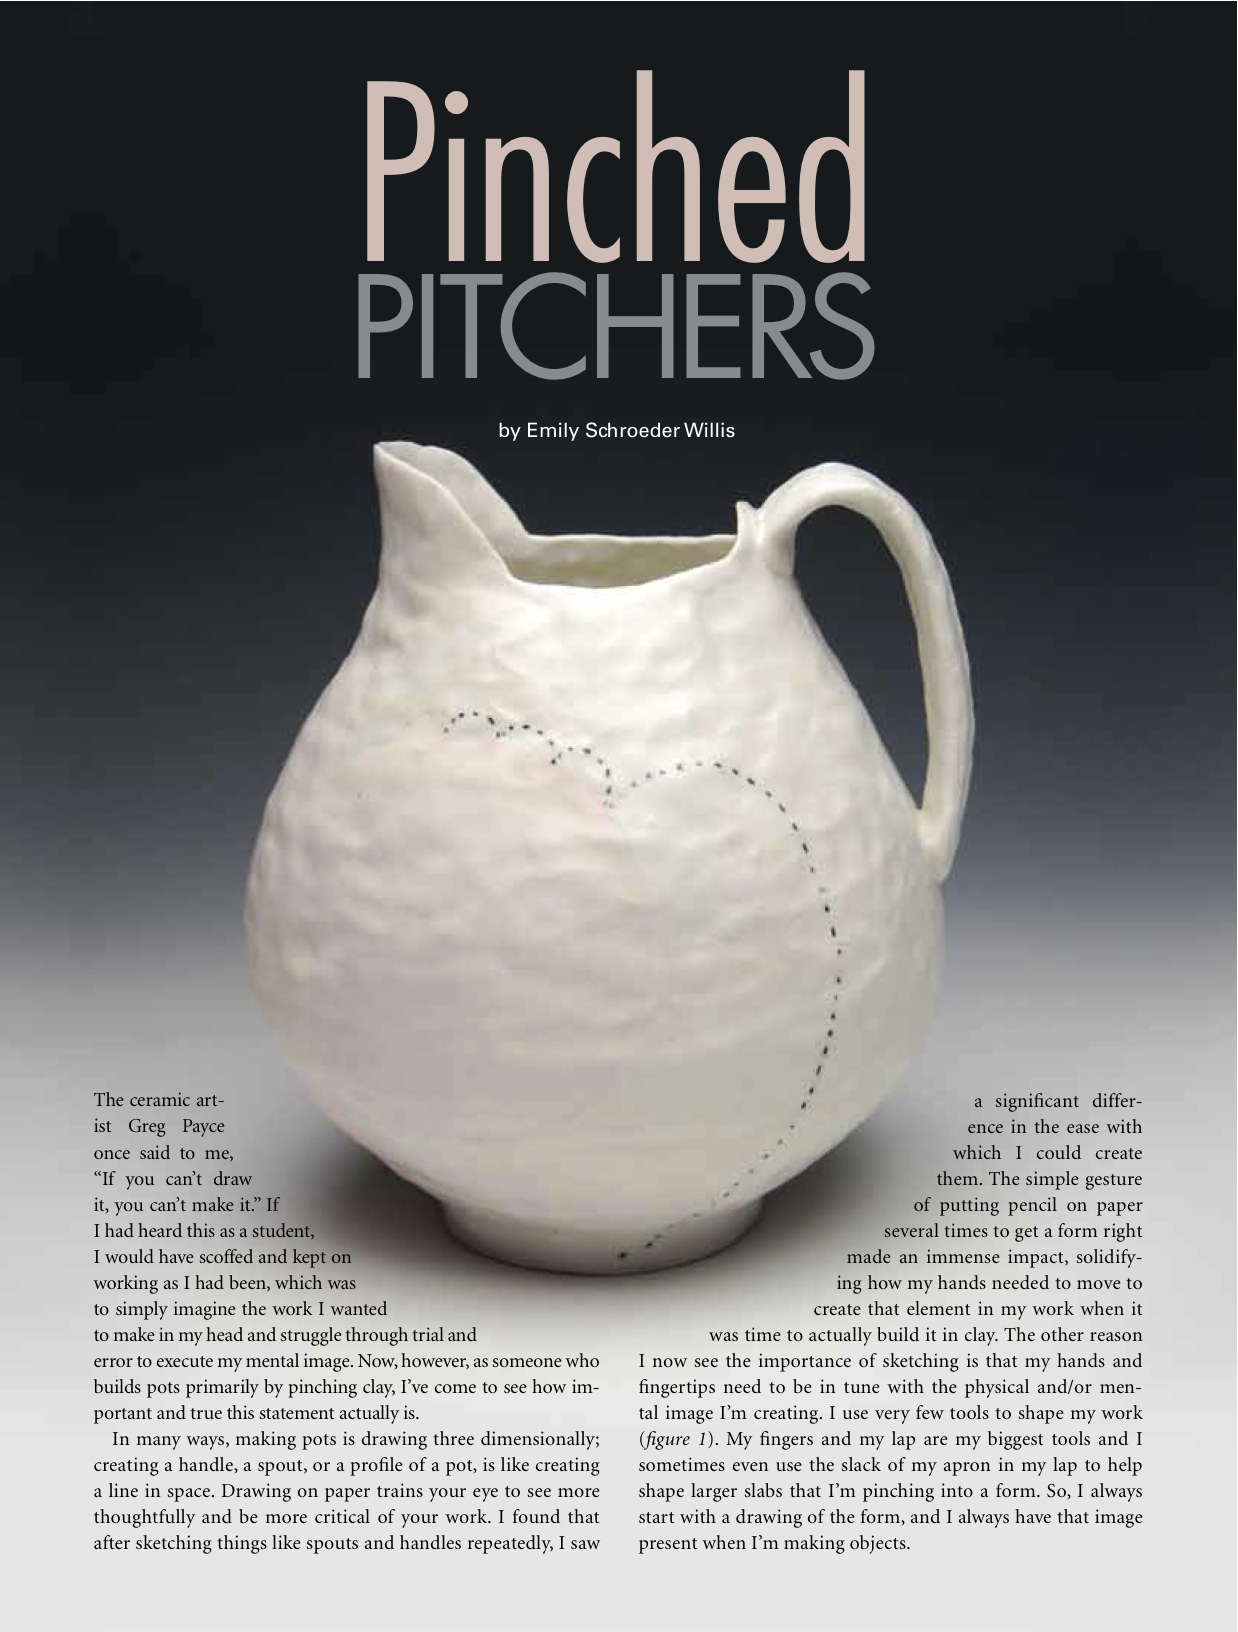 """Originally published in Pottery Making Illustrated, March/April 2013, pp. 17-21.                  Normal.dotm     0     0     1     42     240     ACAD     2     1     294     12.0                          0     false             18 pt     18 pt     0     0         false     false     false                                                     /* Style Definitions */ table.MsoNormalTable 	{mso-style-name:""Table Normal""; 	mso-tstyle-rowband-size:0; 	mso-tstyle-colband-size:0; 	mso-style-noshow:yes; 	mso-style-parent:""""; 	mso-padding-alt:0in 5.4pt 0in 5.4pt; 	mso-para-margin:0in; 	mso-para-margin-bottom:.0001pt; 	mso-pagination:widow-orphan; 	font-size:12.0pt; 	font-family:""Times New Roman""; 	mso-ascii-font-family:Cambria; 	mso-ascii-theme-font:minor-latin; 	mso-fareast-font-family:""Times New Roman""; 	mso-fareast-theme-font:minor-fareast; 	mso-hansi-font-family:Cambria; 	mso-hansi-theme-font:minor-latin;}          http://ceramicartsdaily.org/pottery-making-illustrated  Copyright, The American Ceramic Society. Reprinted with permission."""